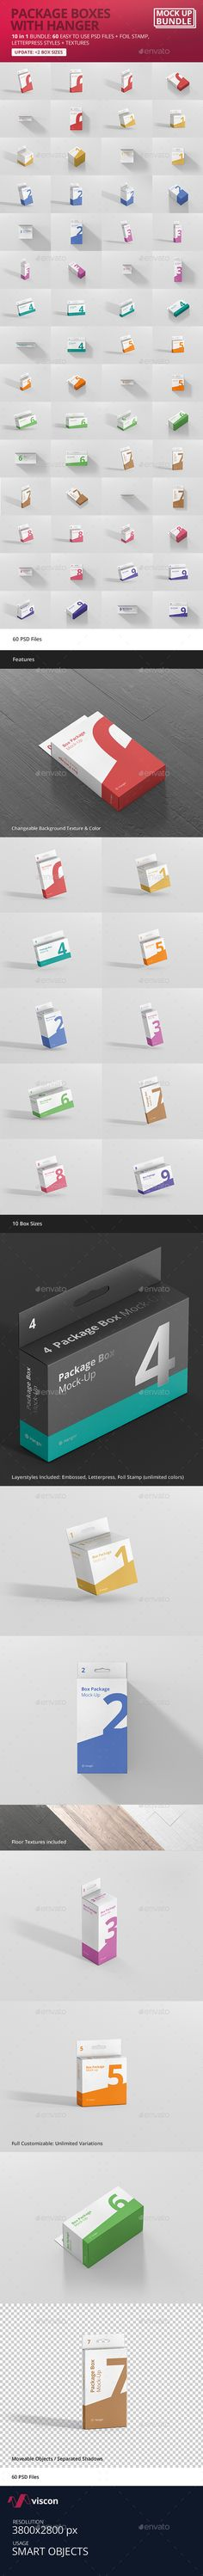 Box Mockup Bundle - with Hanger by visconbiz 60 Photorealistic high quality package box mockup with hanger in 10 different box sizes. Great for packaging design, portfolio, sh